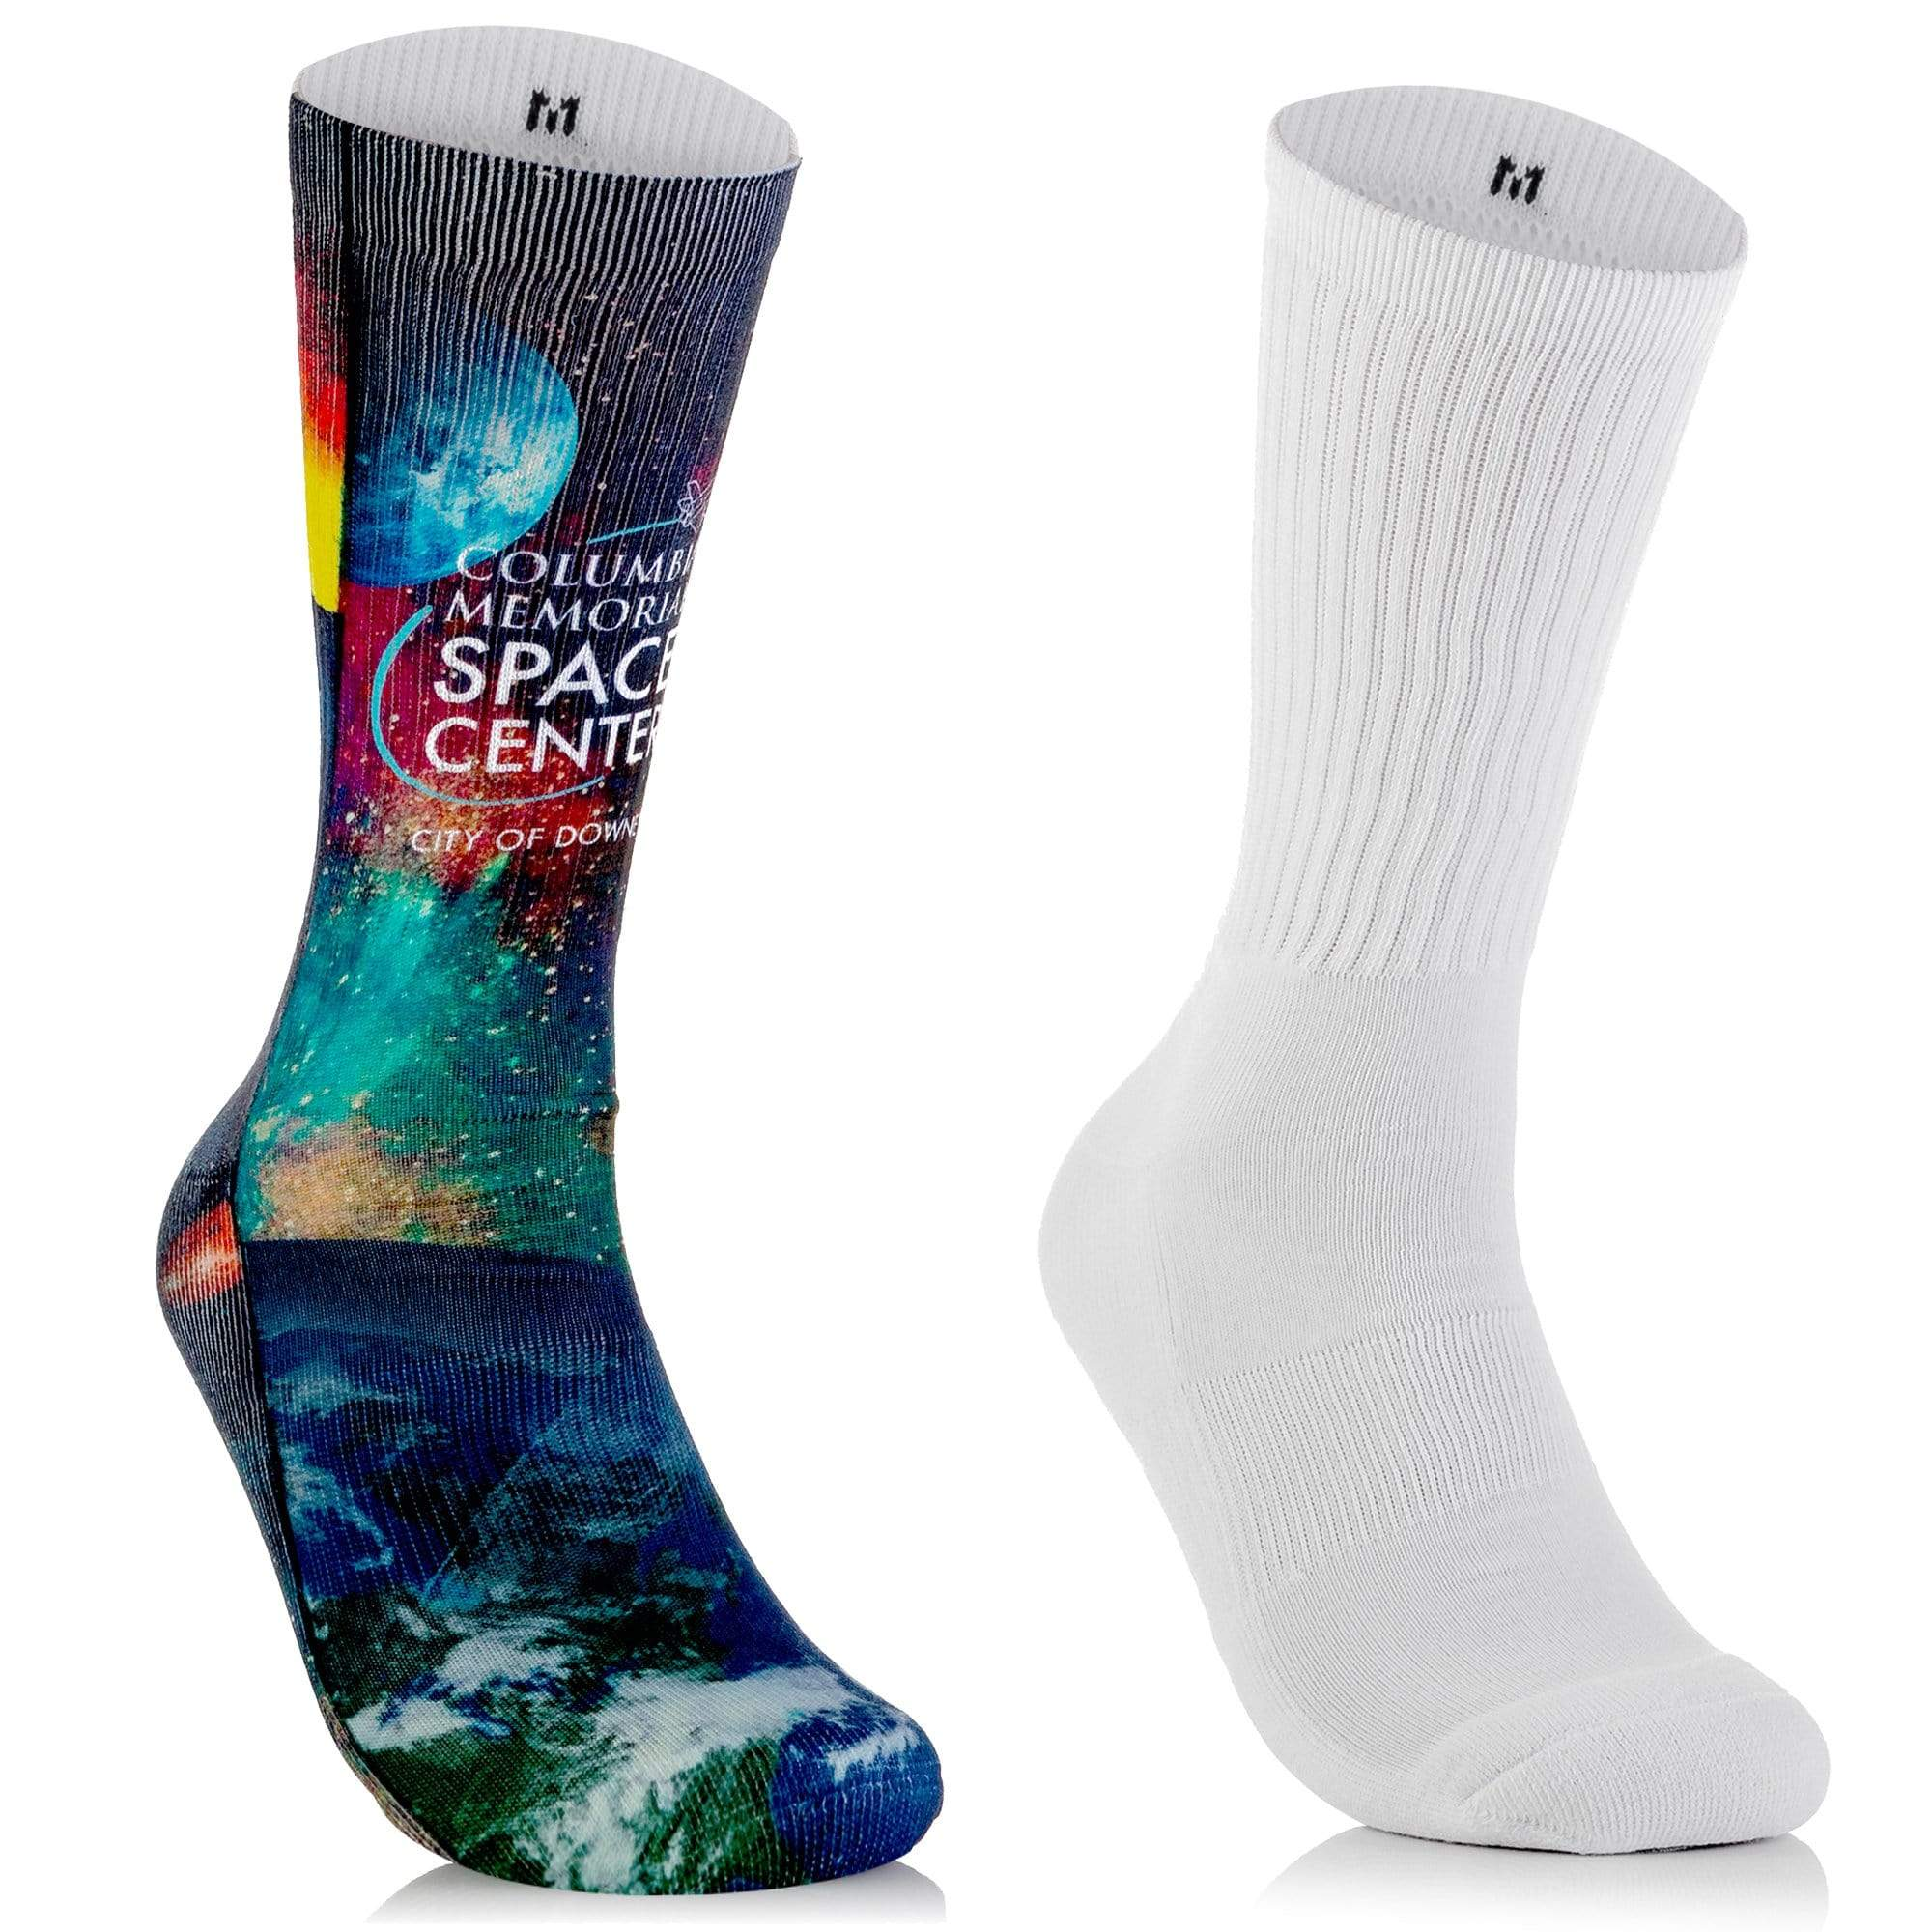 Blank Streetwear socks (Full Poly- Crew Length)